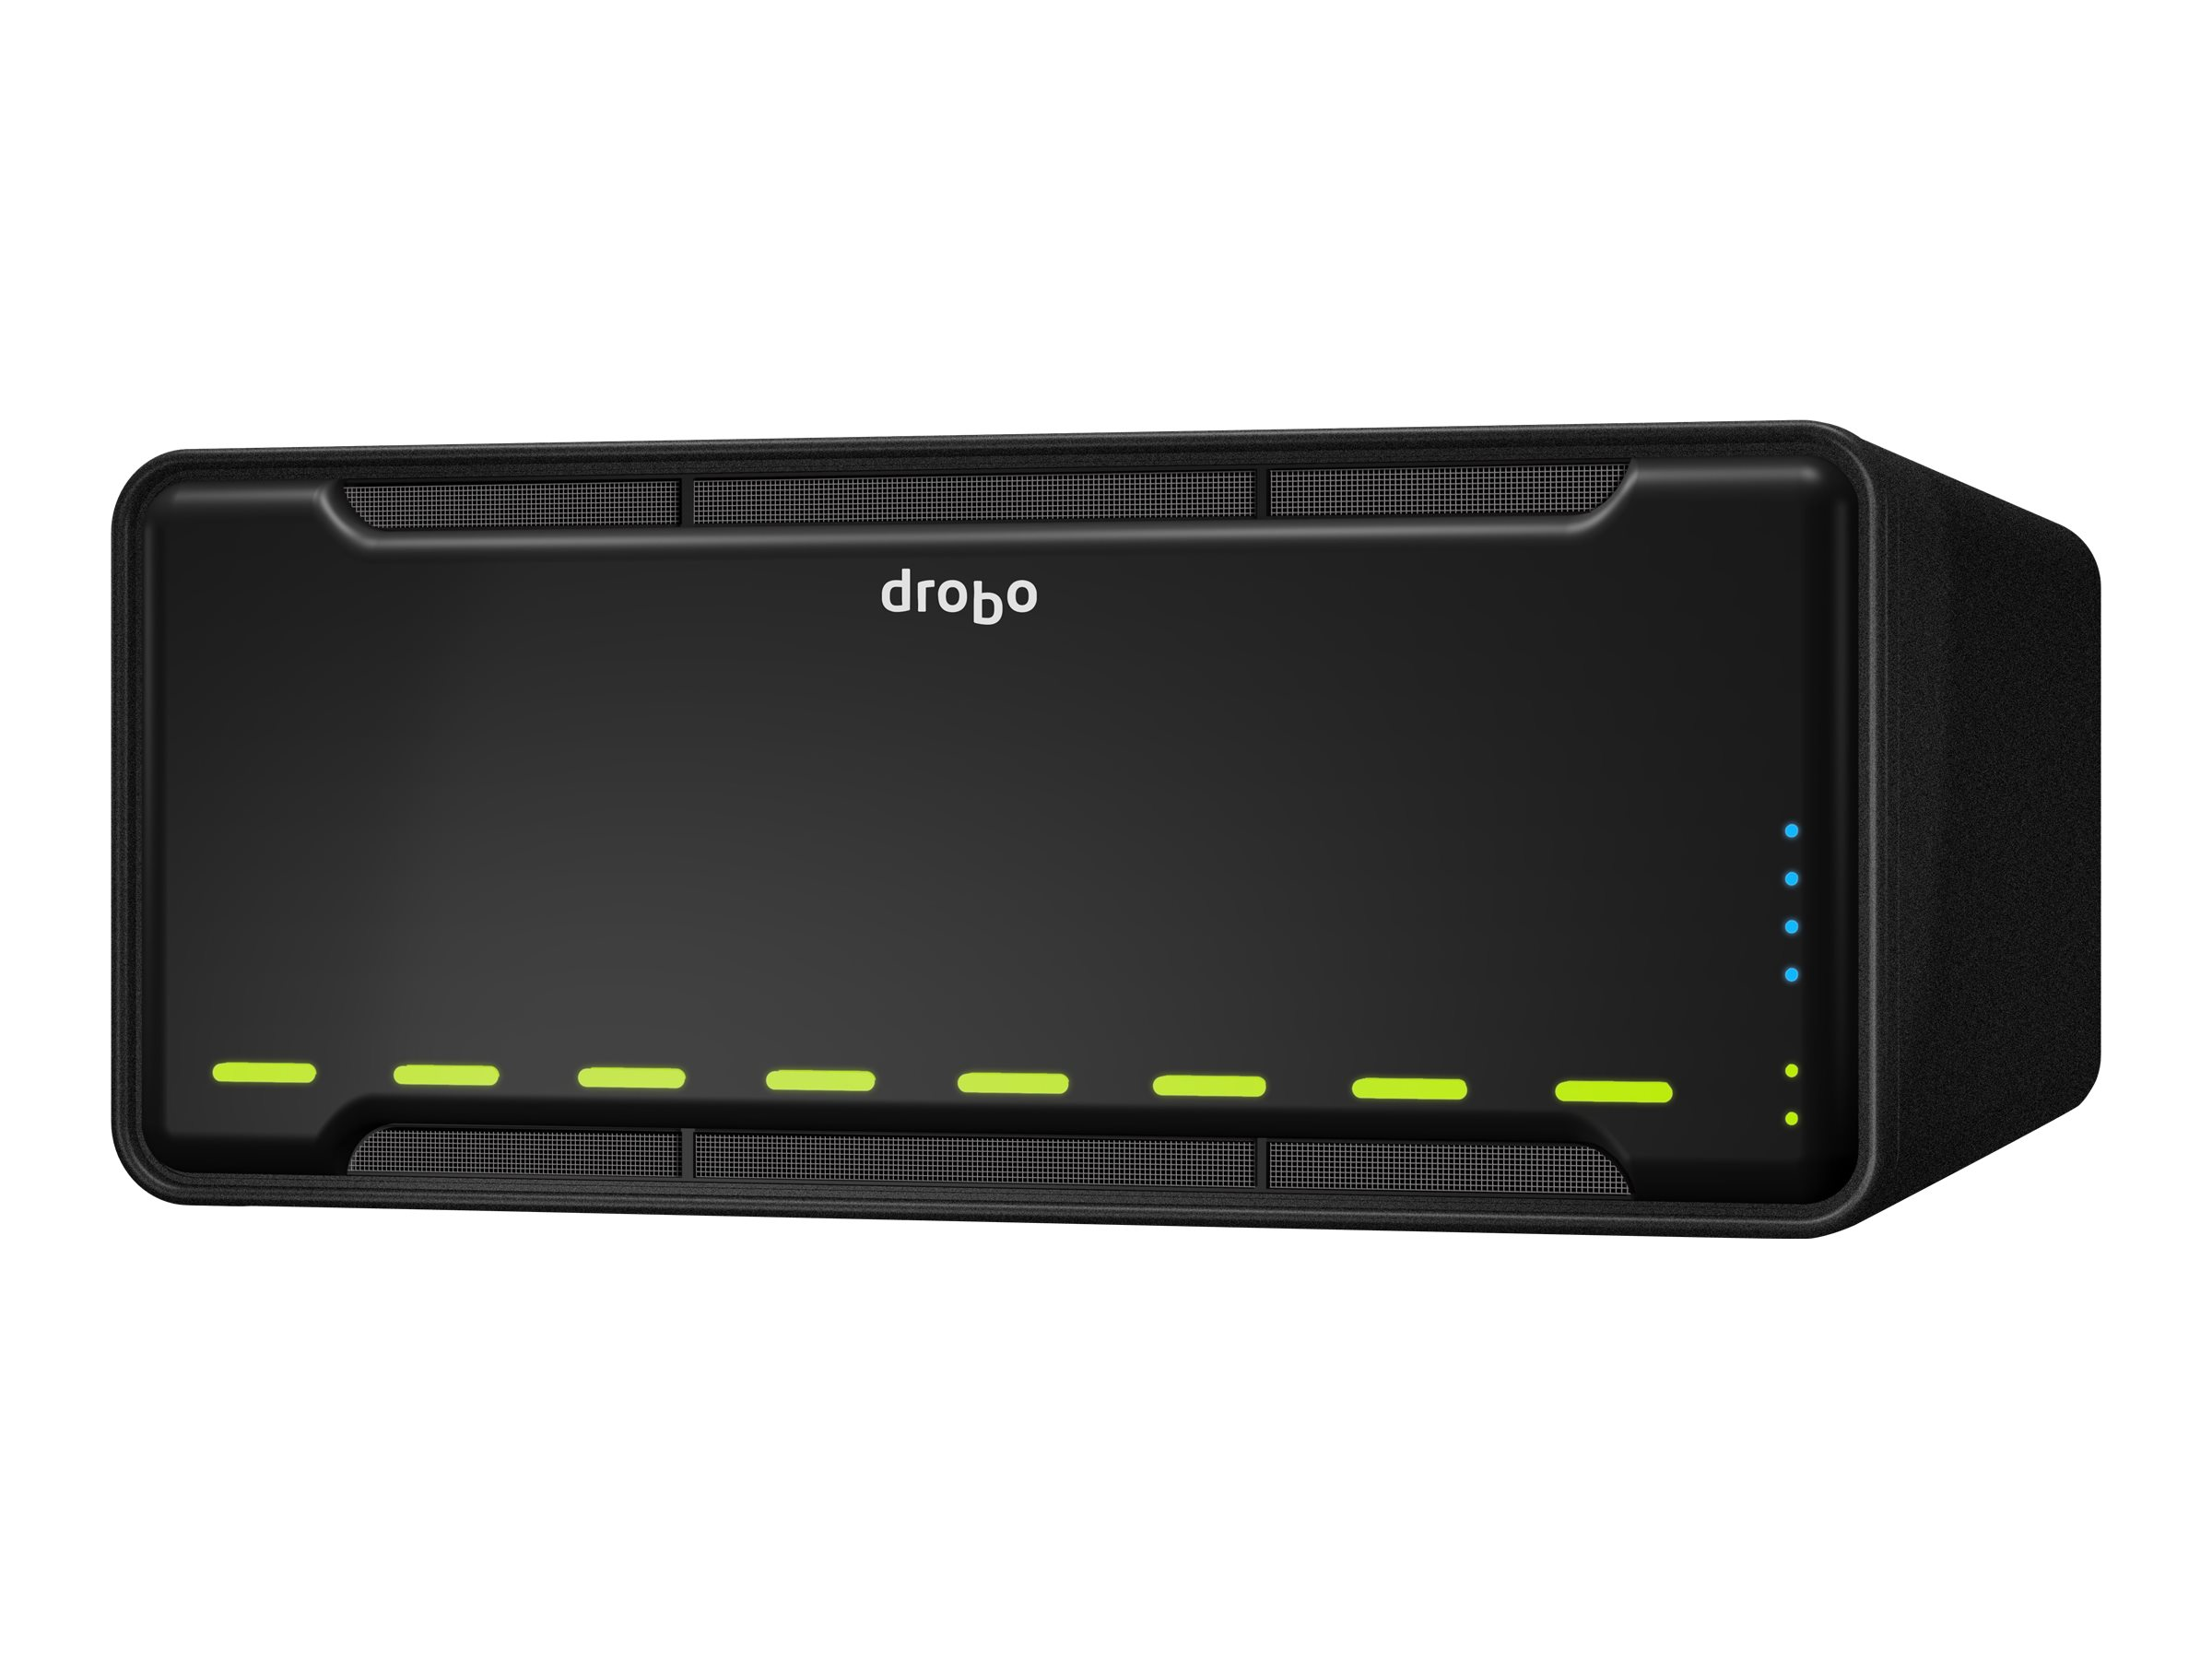 Drobo B810n - NAS-Server - 8 Schächte - SATA 6Gb/s - Gigabit Ethernet